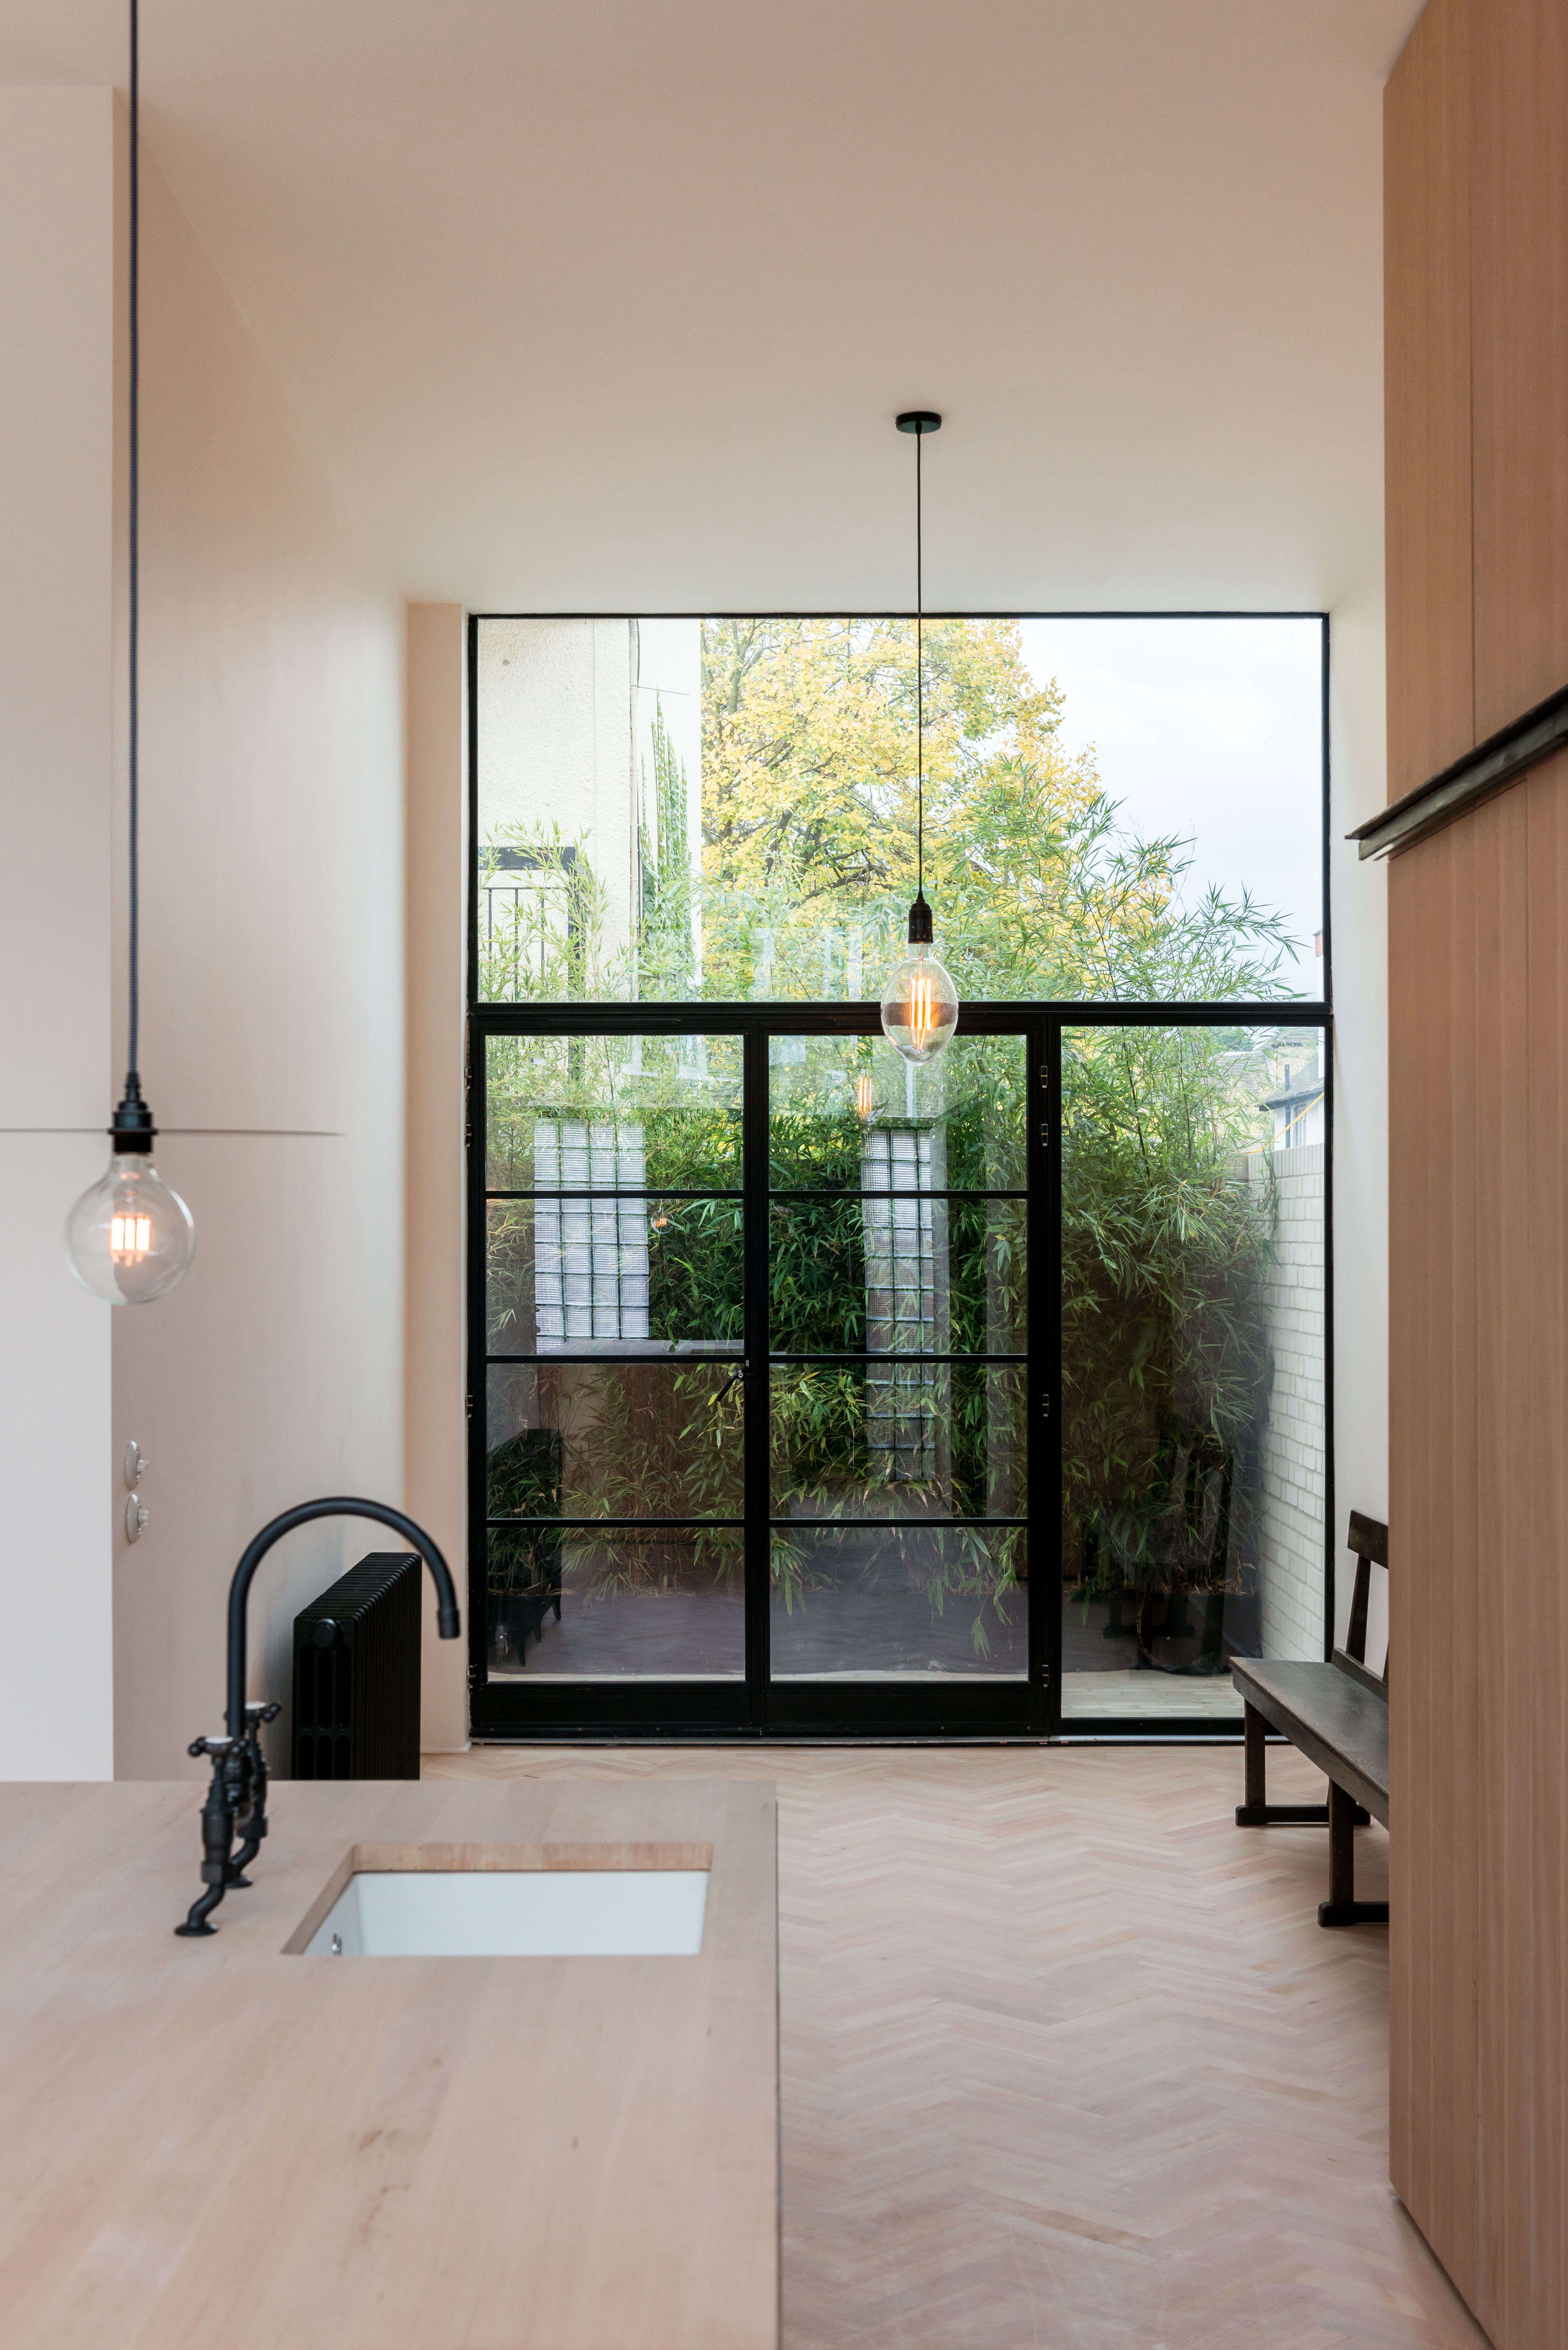 On the Market A London NewBuild Inspired by the Iconic Maison de Verre imperial club frame property london 23